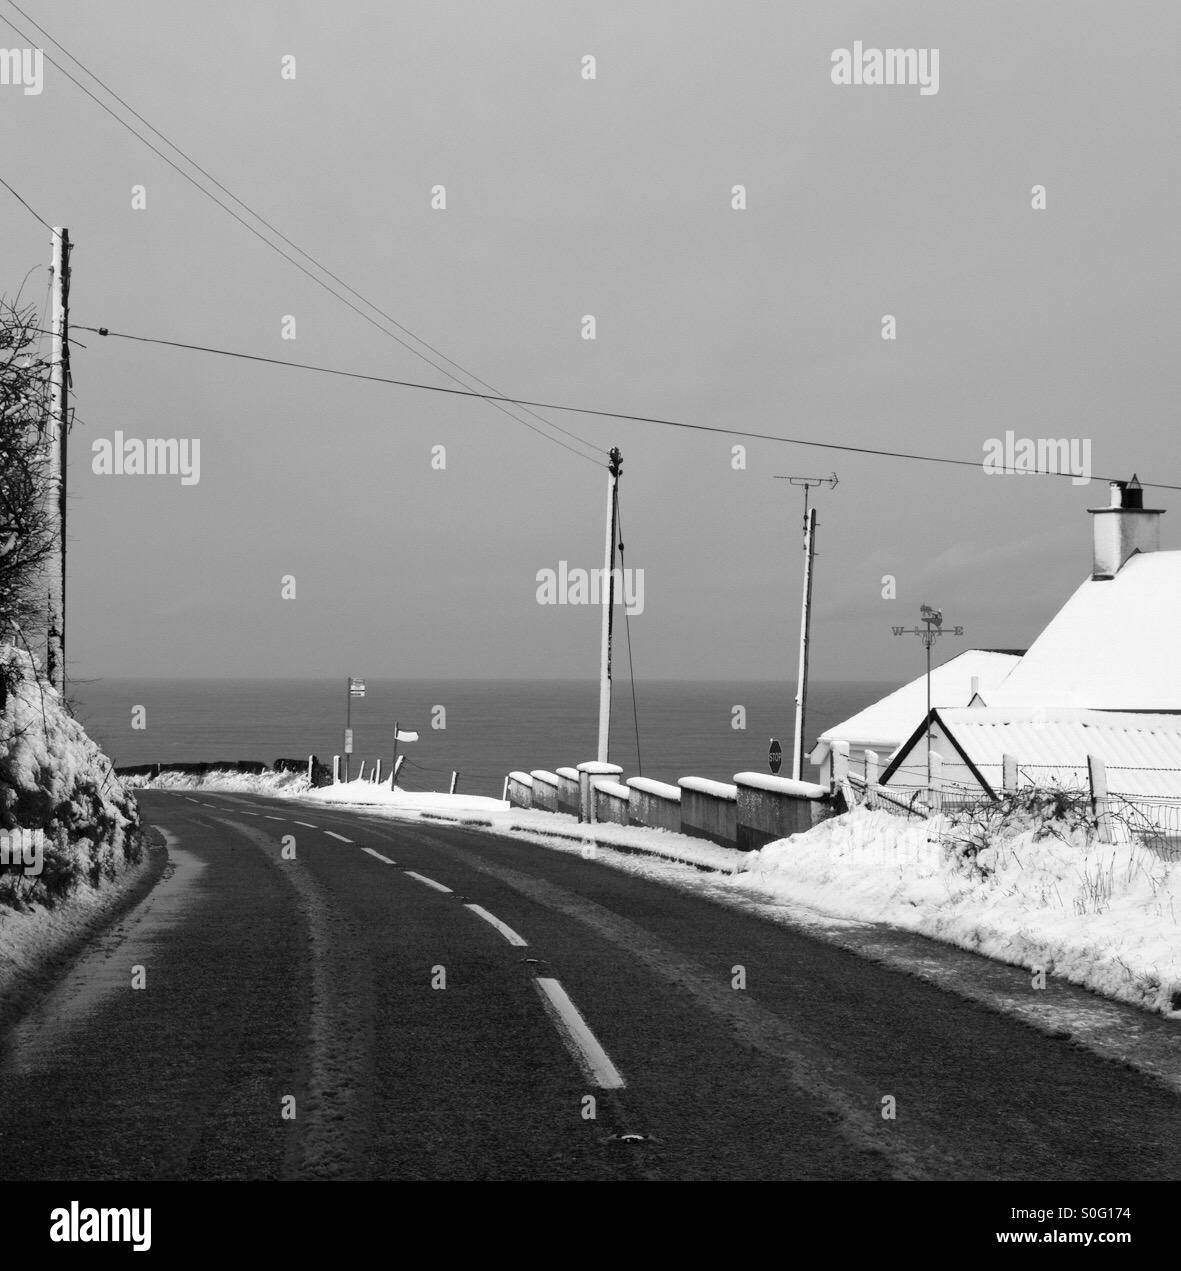 Oceanview during wintertime along Causewaycoastalroute, Northern Ireland. - Stock Image